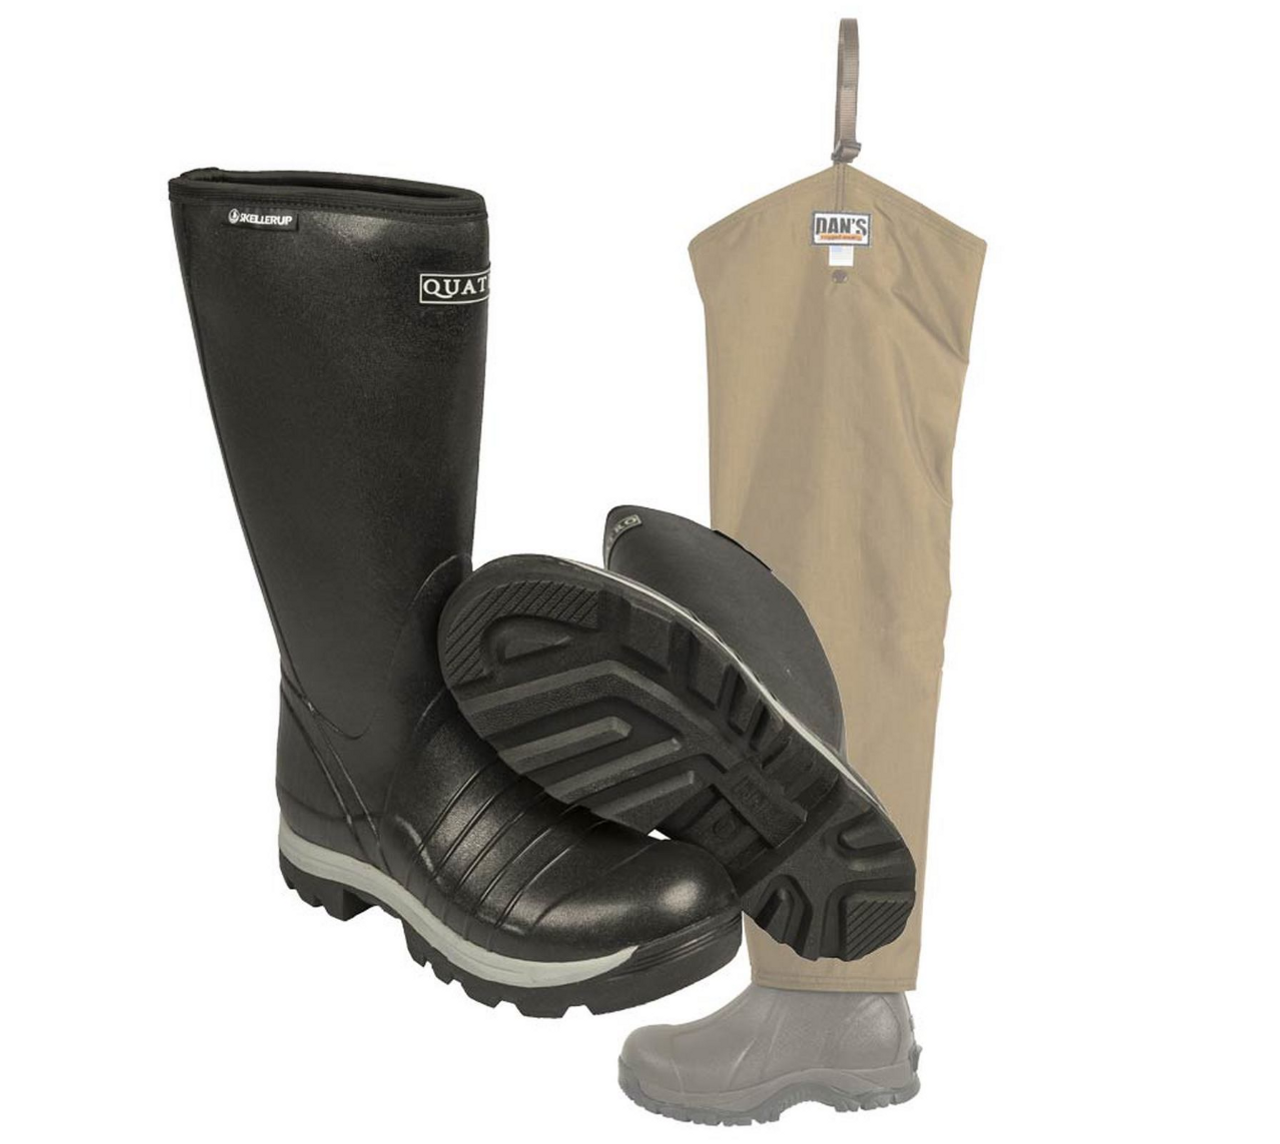 Quatro Insulated Boot with Five Star Briarproof Froglegs